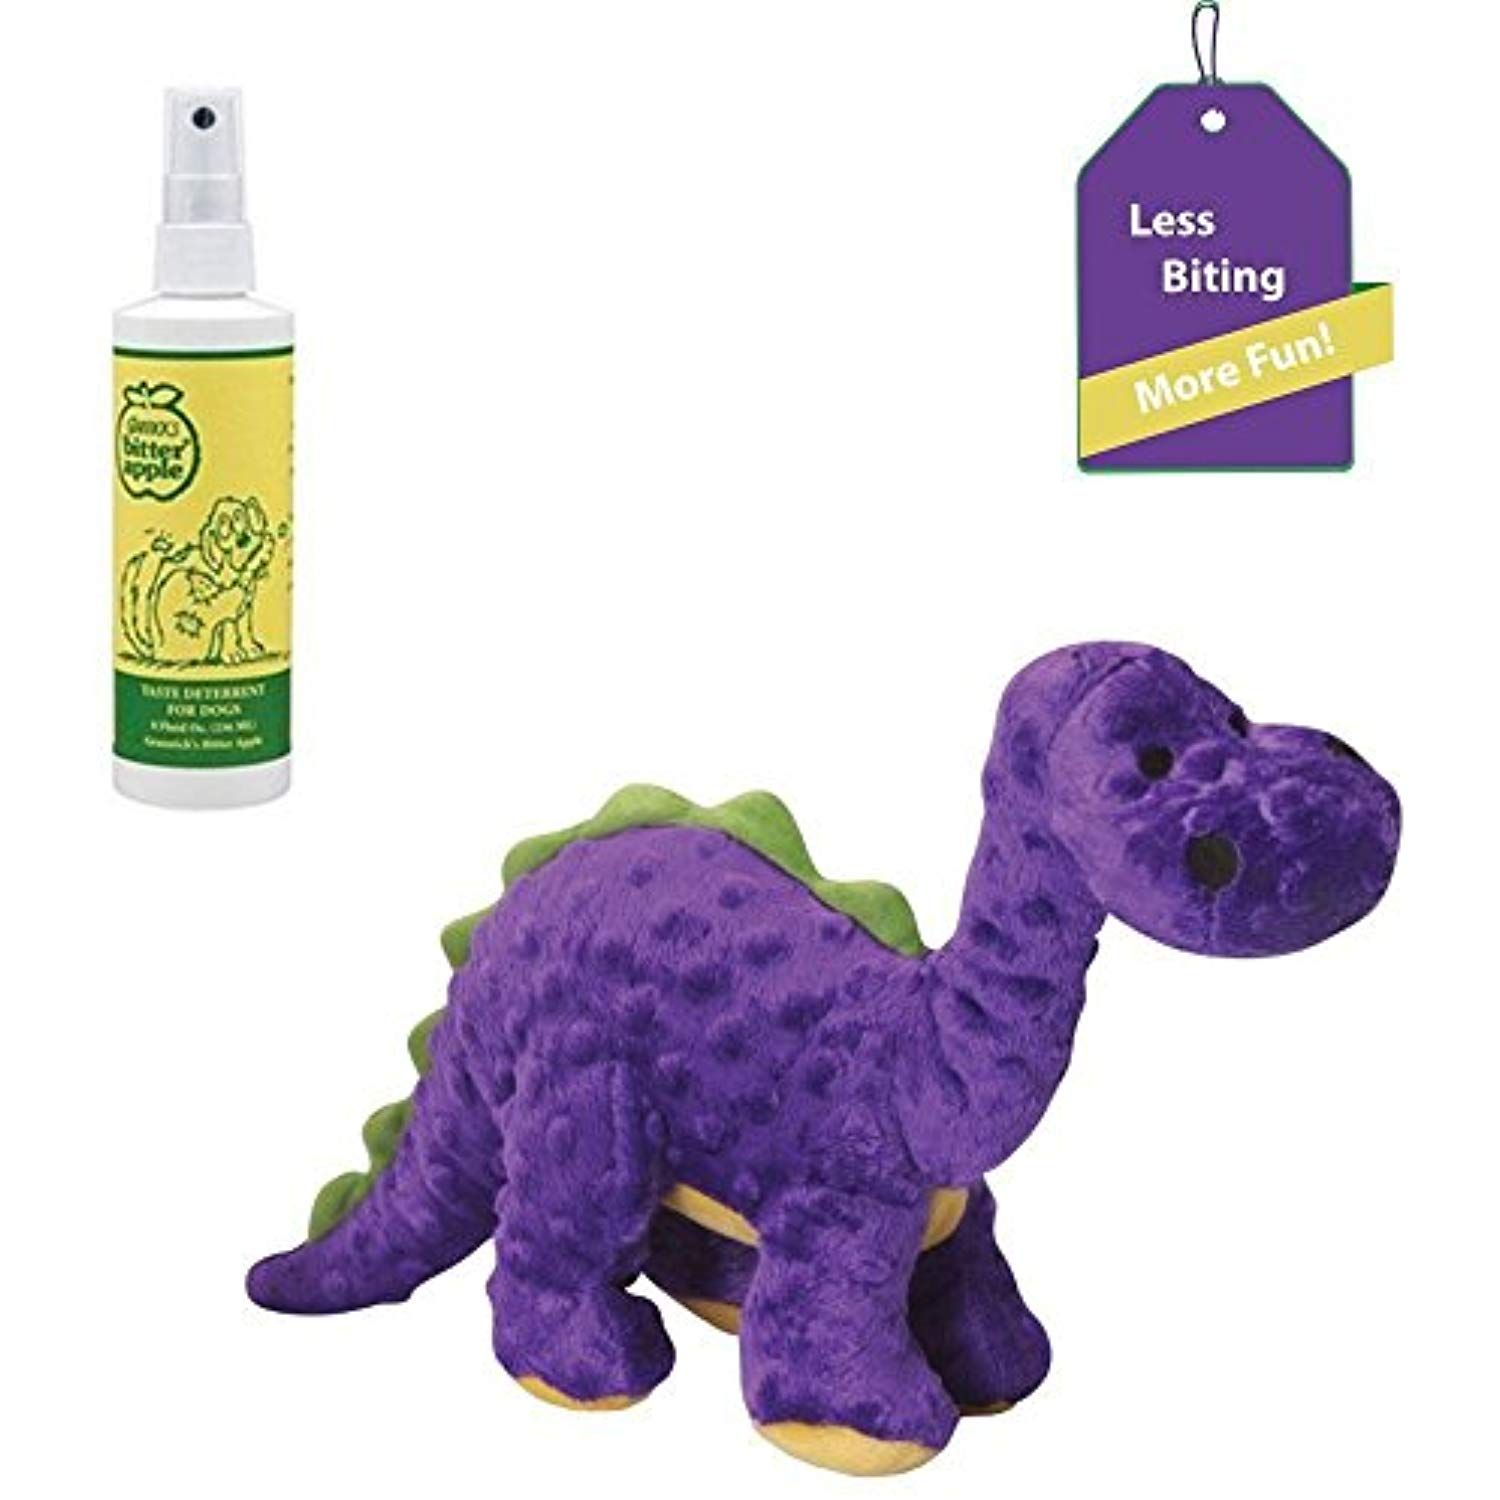 Bitter Apple Spray for Dogs Tough Dog Chew Toy purple dino Dog